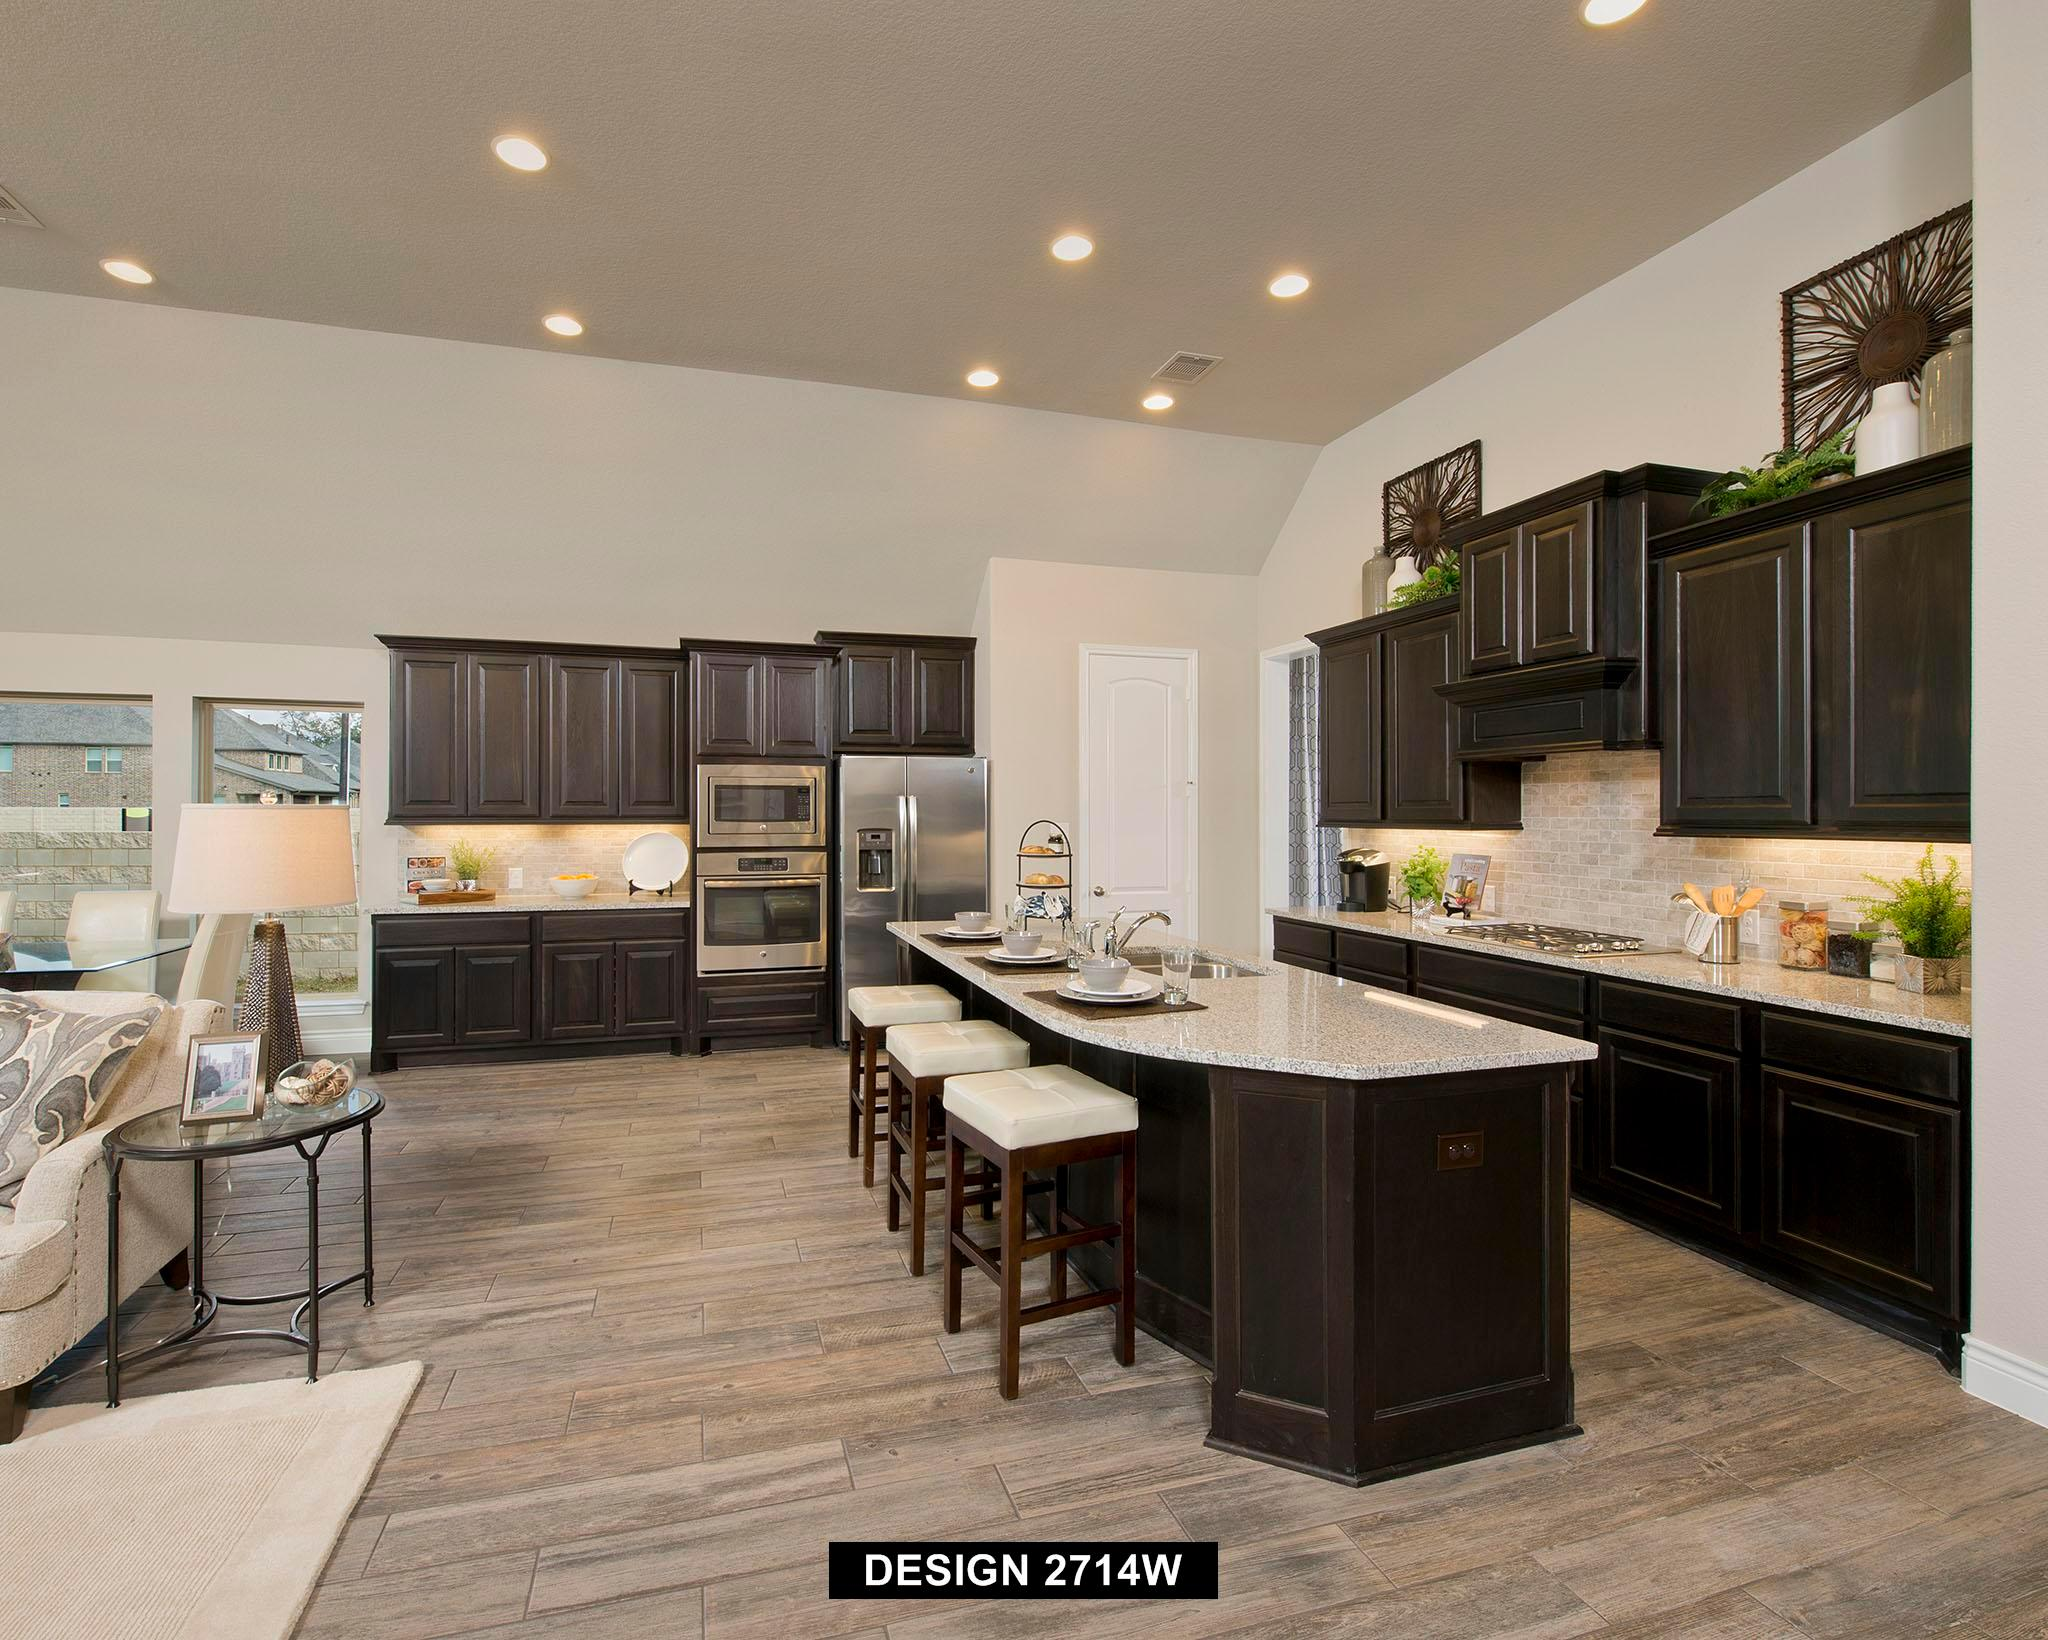 Kitchen featured in the 2714W By Perry Homes in Houston, TX